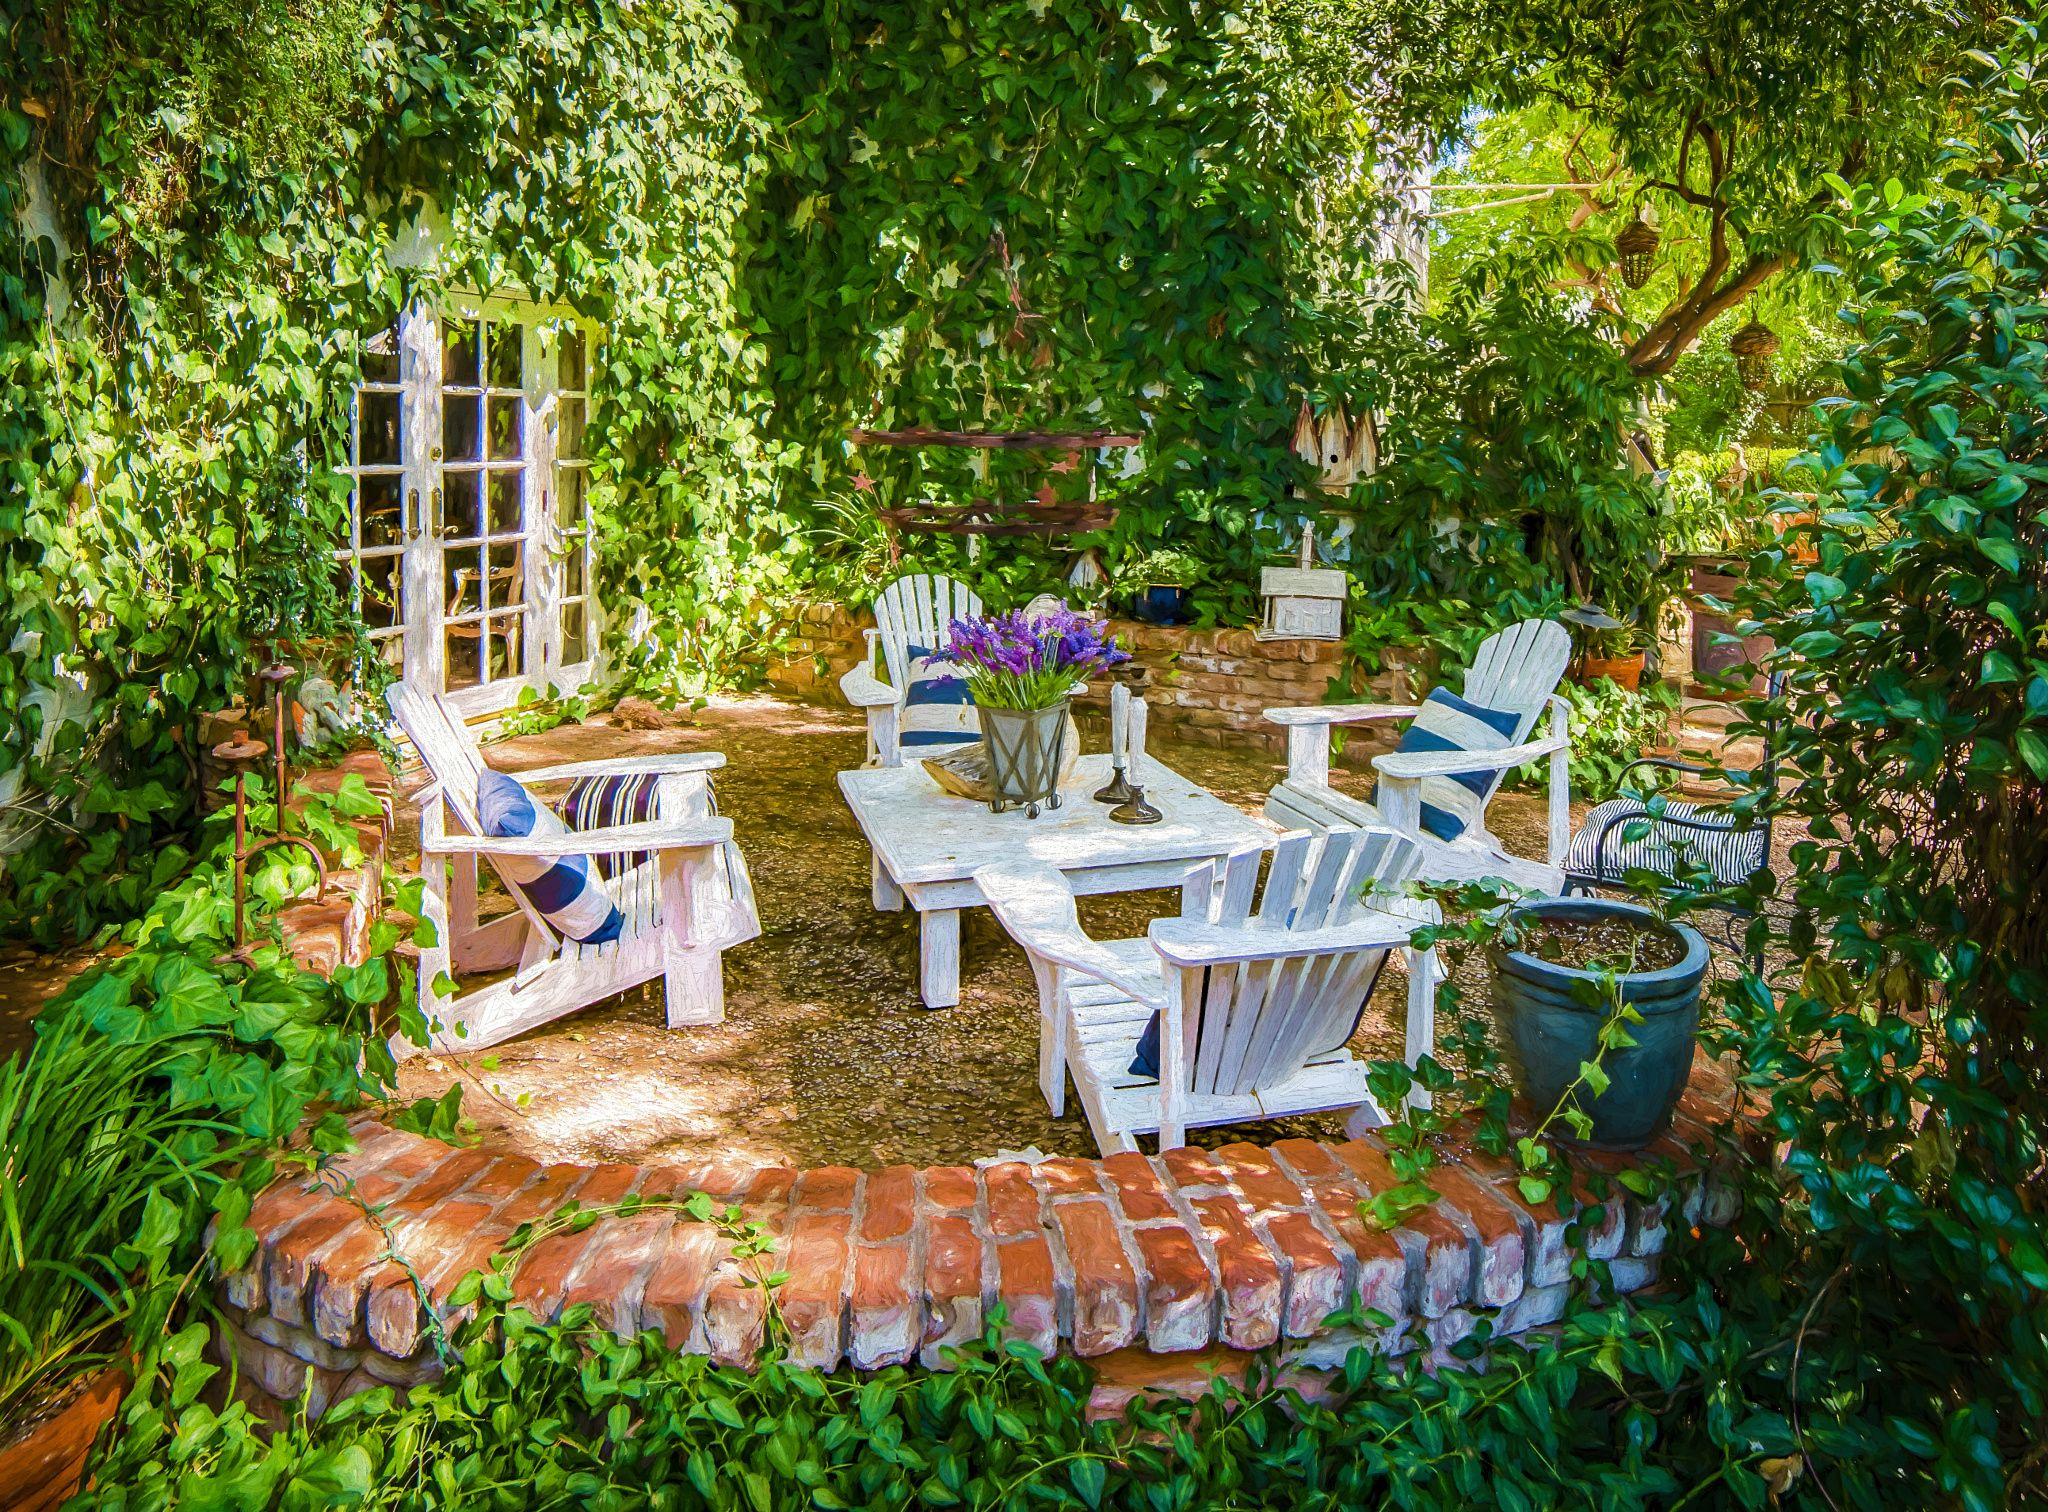 Summer Days   A Lovely Backyard Summer Patio, Complete With French Doors,  Climbing Vines